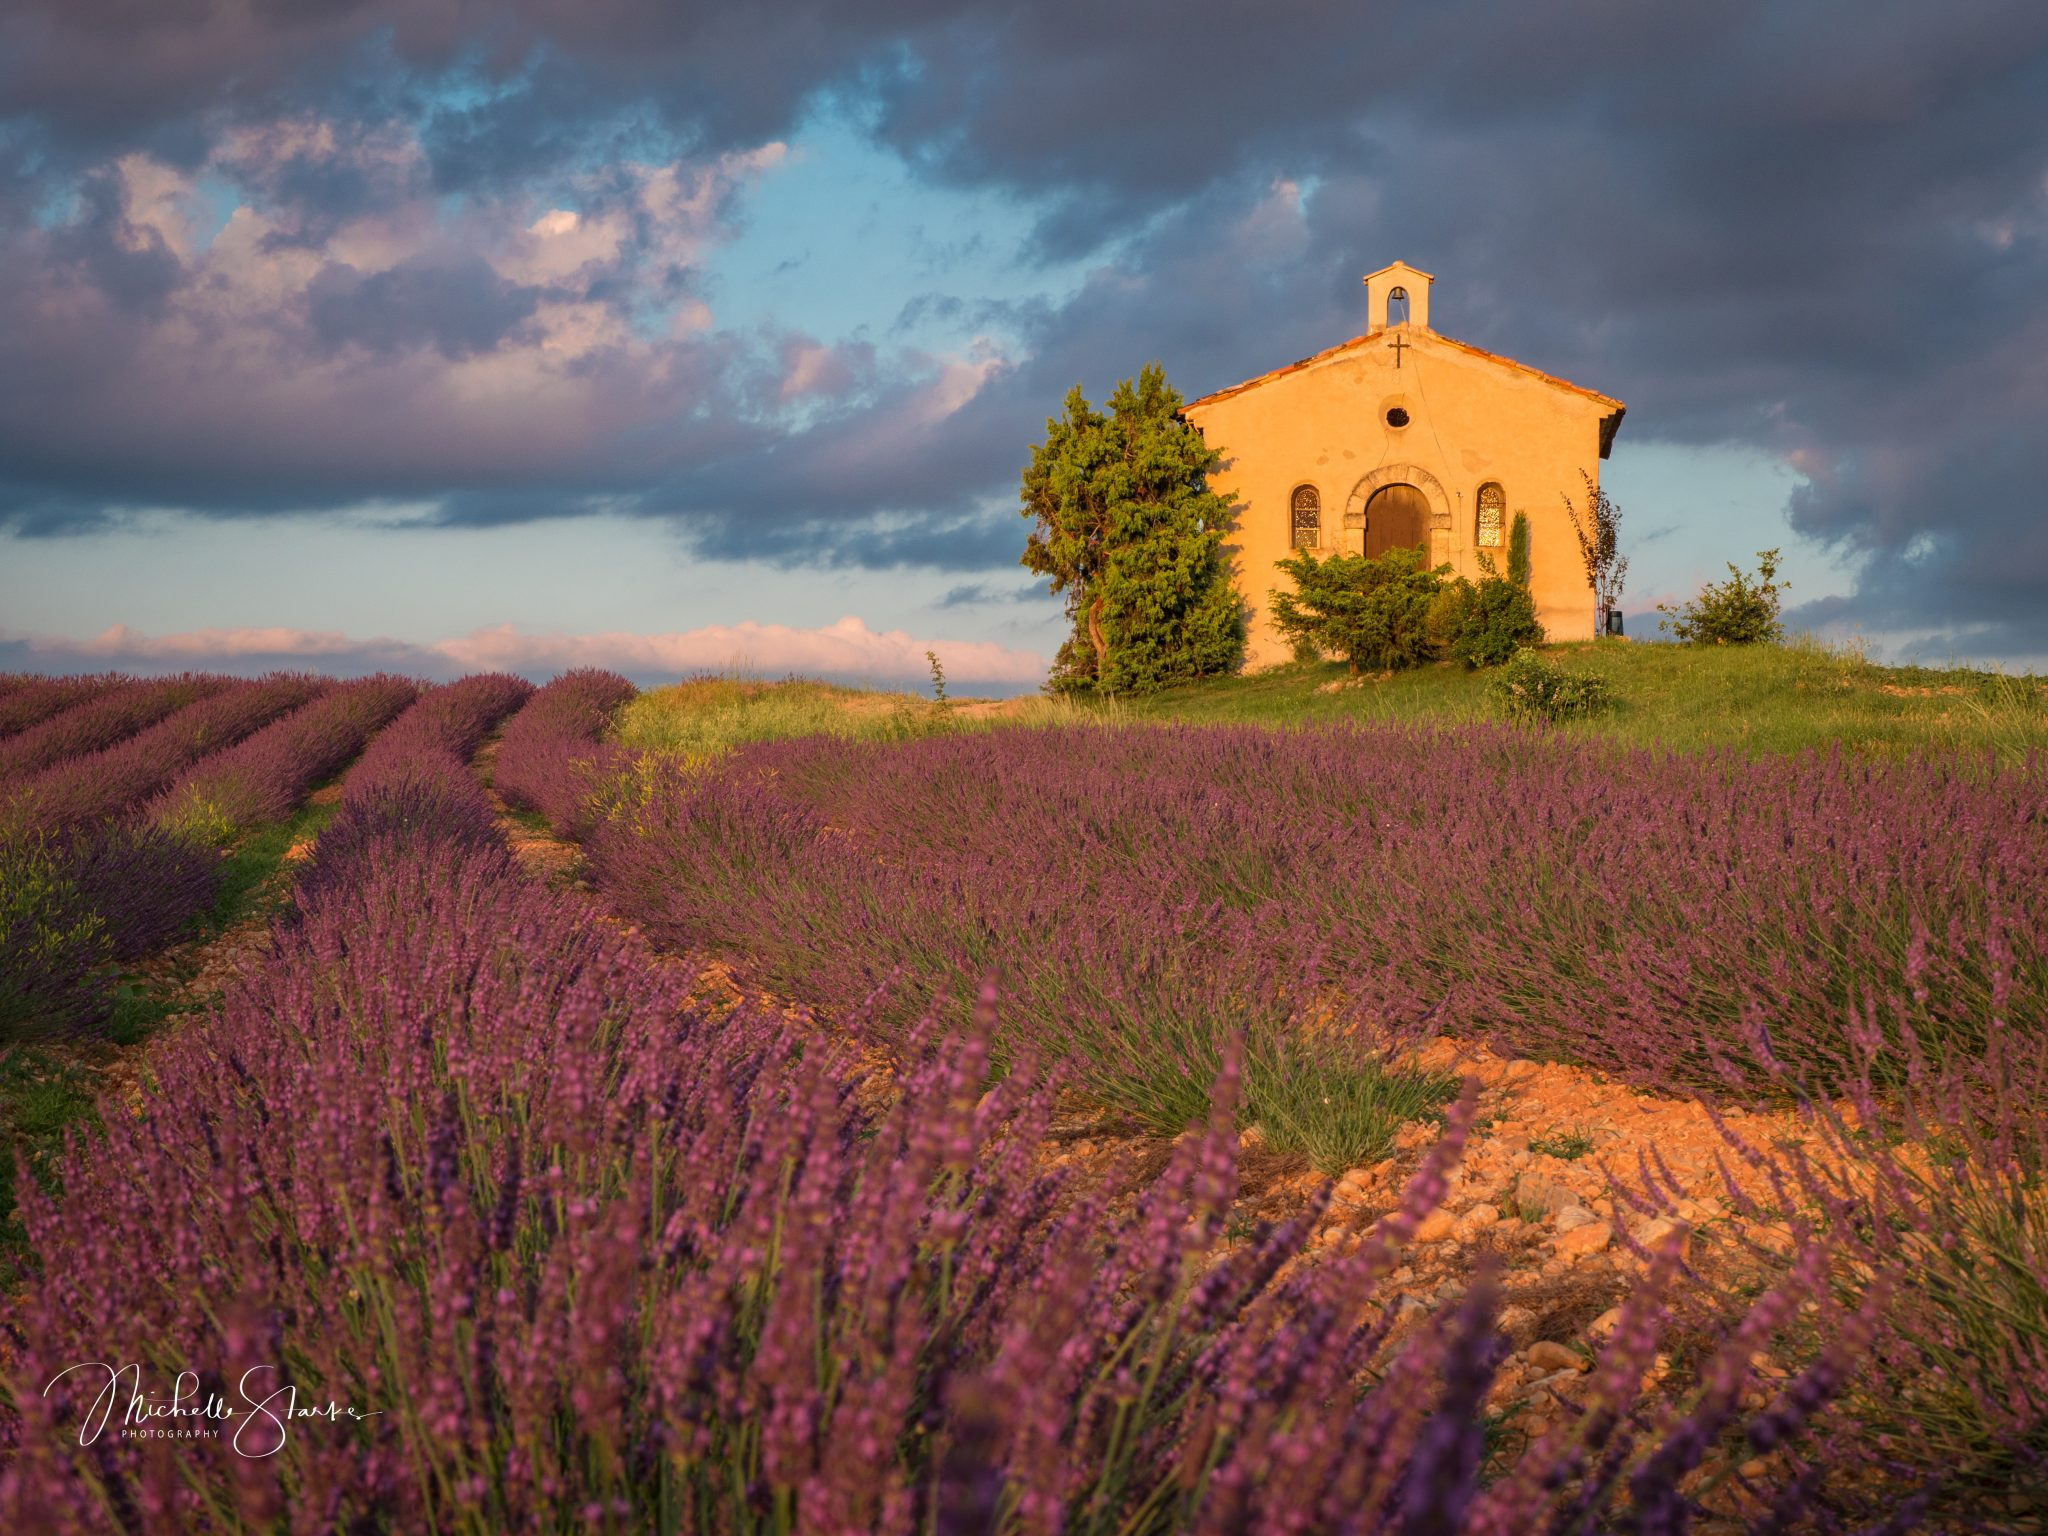 Chapel on a Hill, Plateau de Valensole, Provence, France 6/27/18